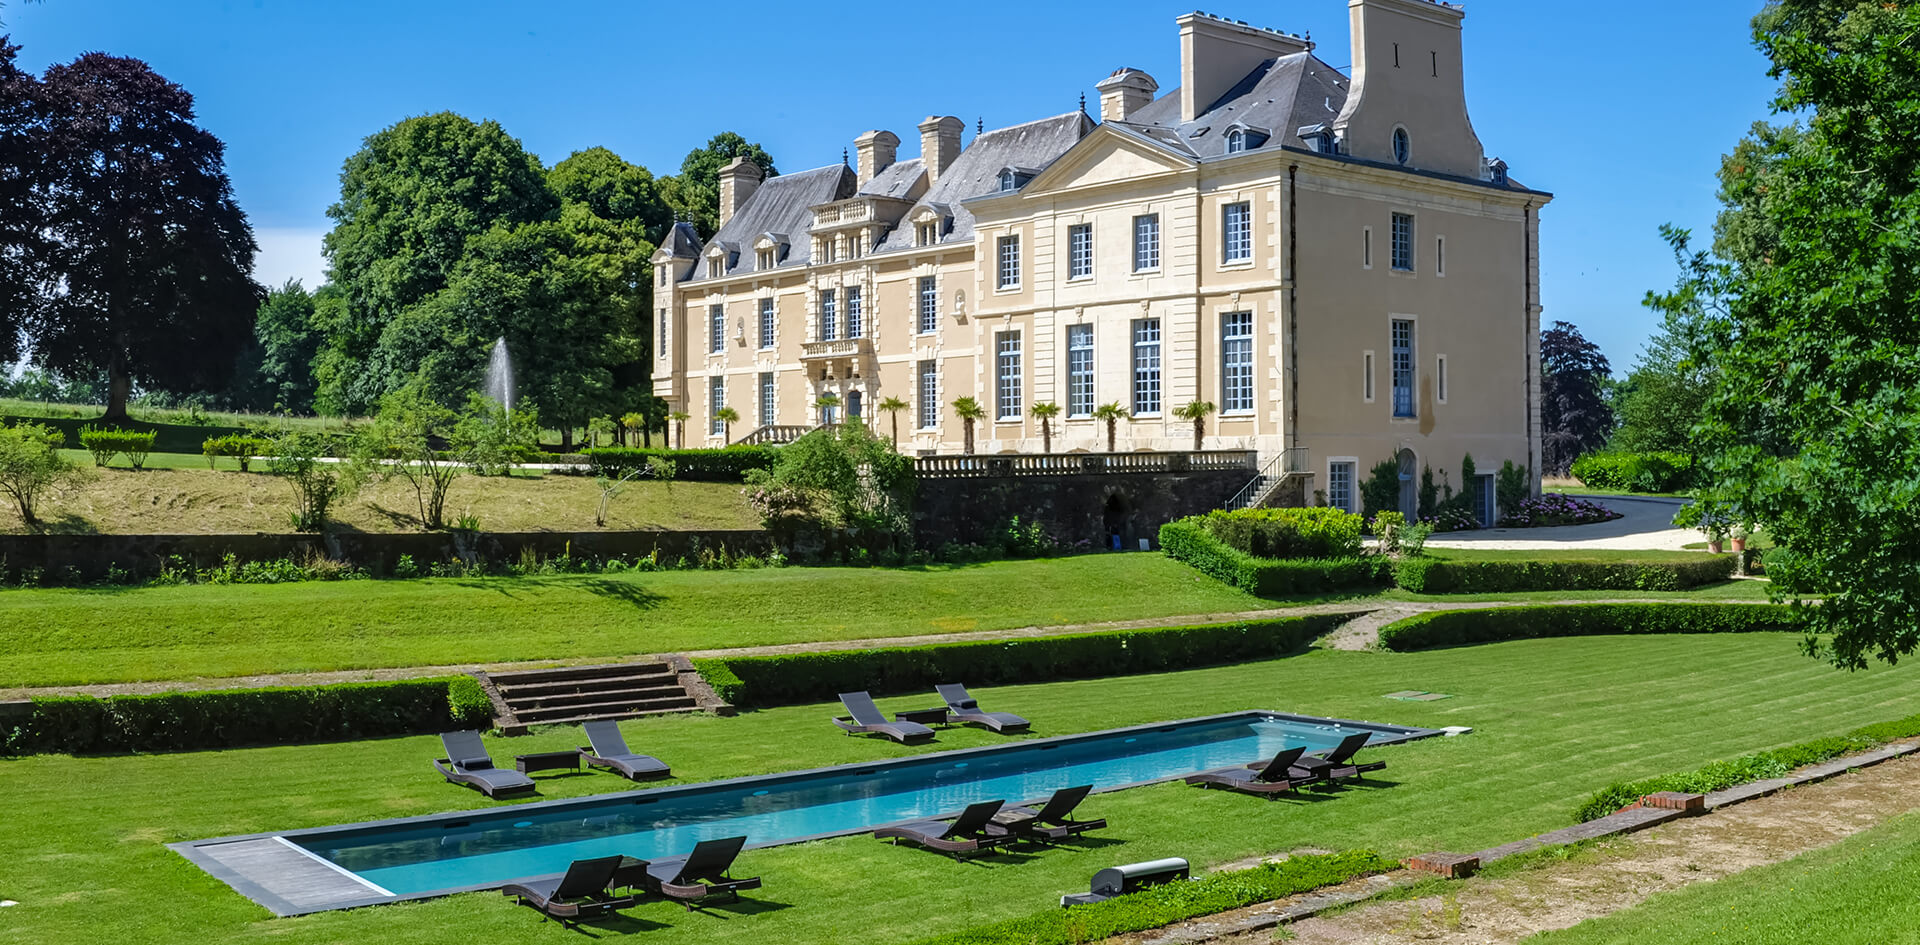 Castle and the parc with outside swimming pool